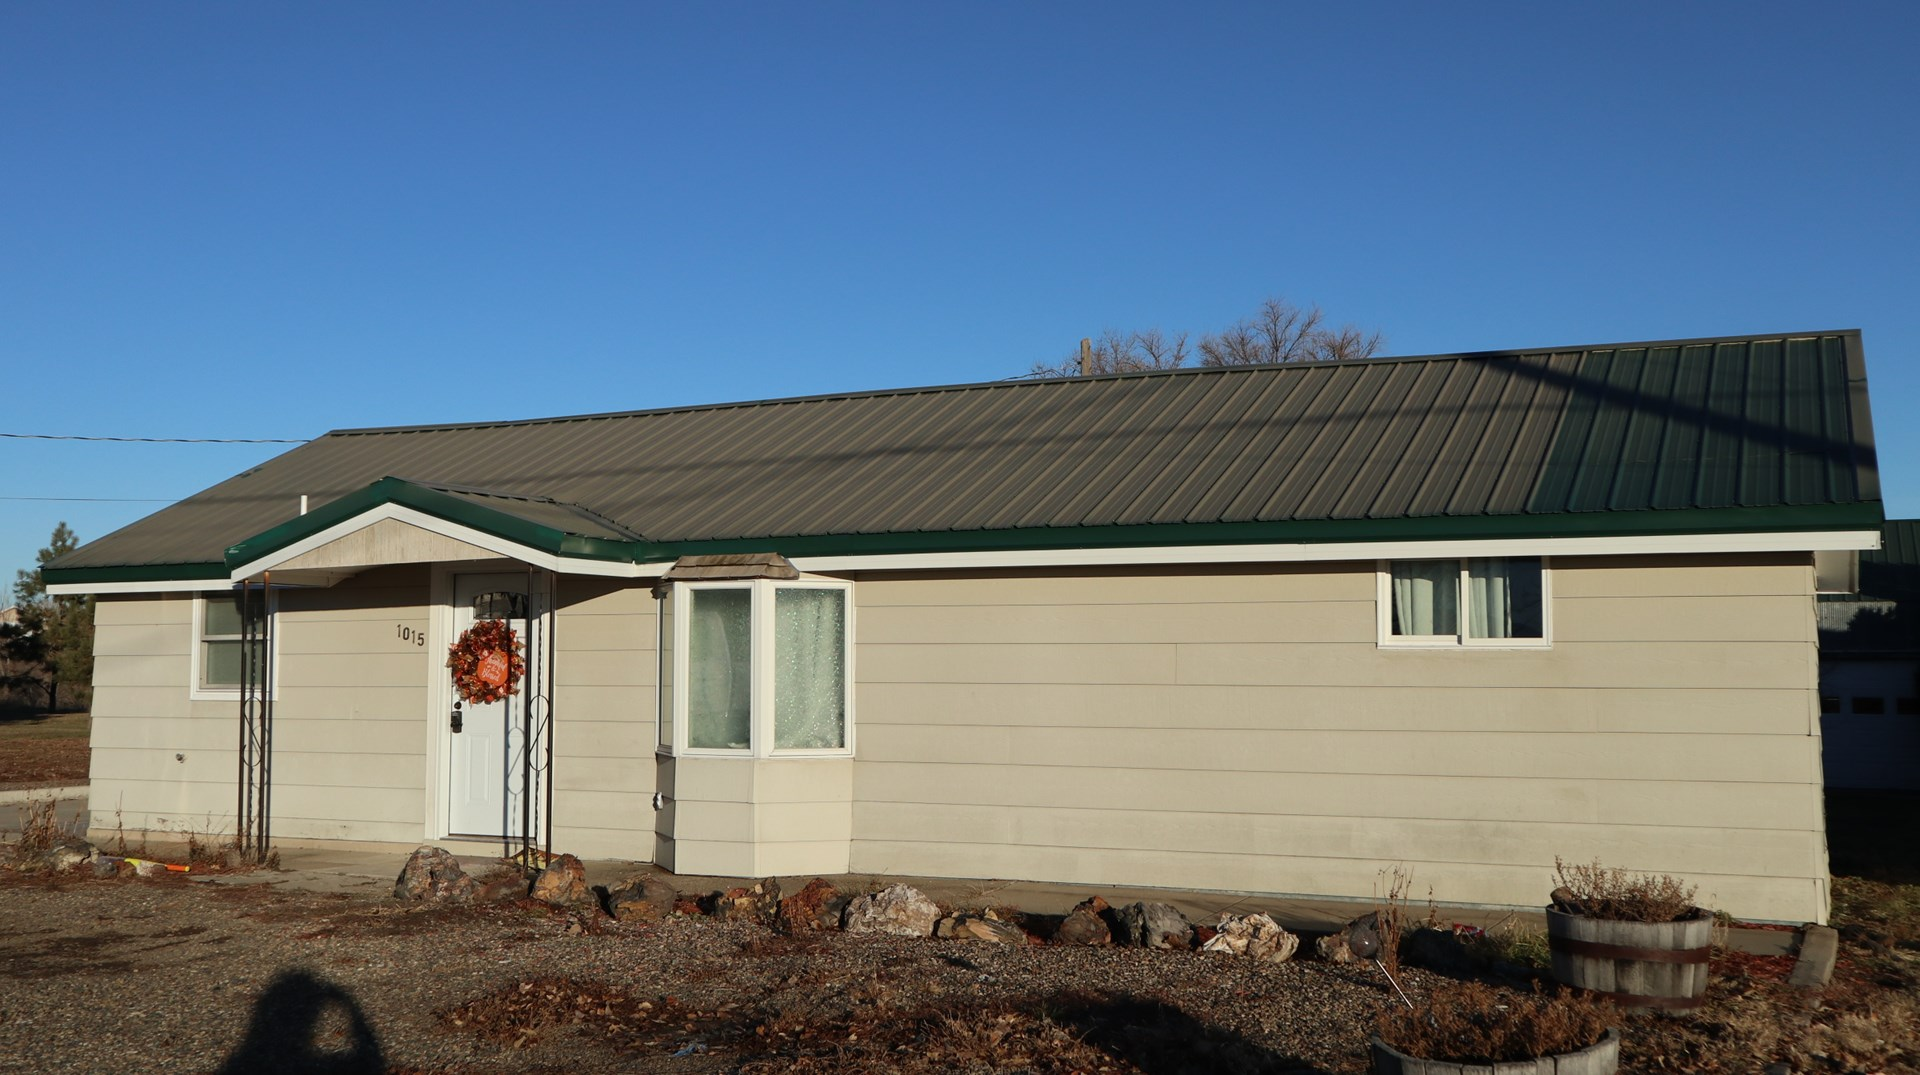 Move-in Ready 3 BD, 1 BA Home w/ Large Shop in Glendive MT